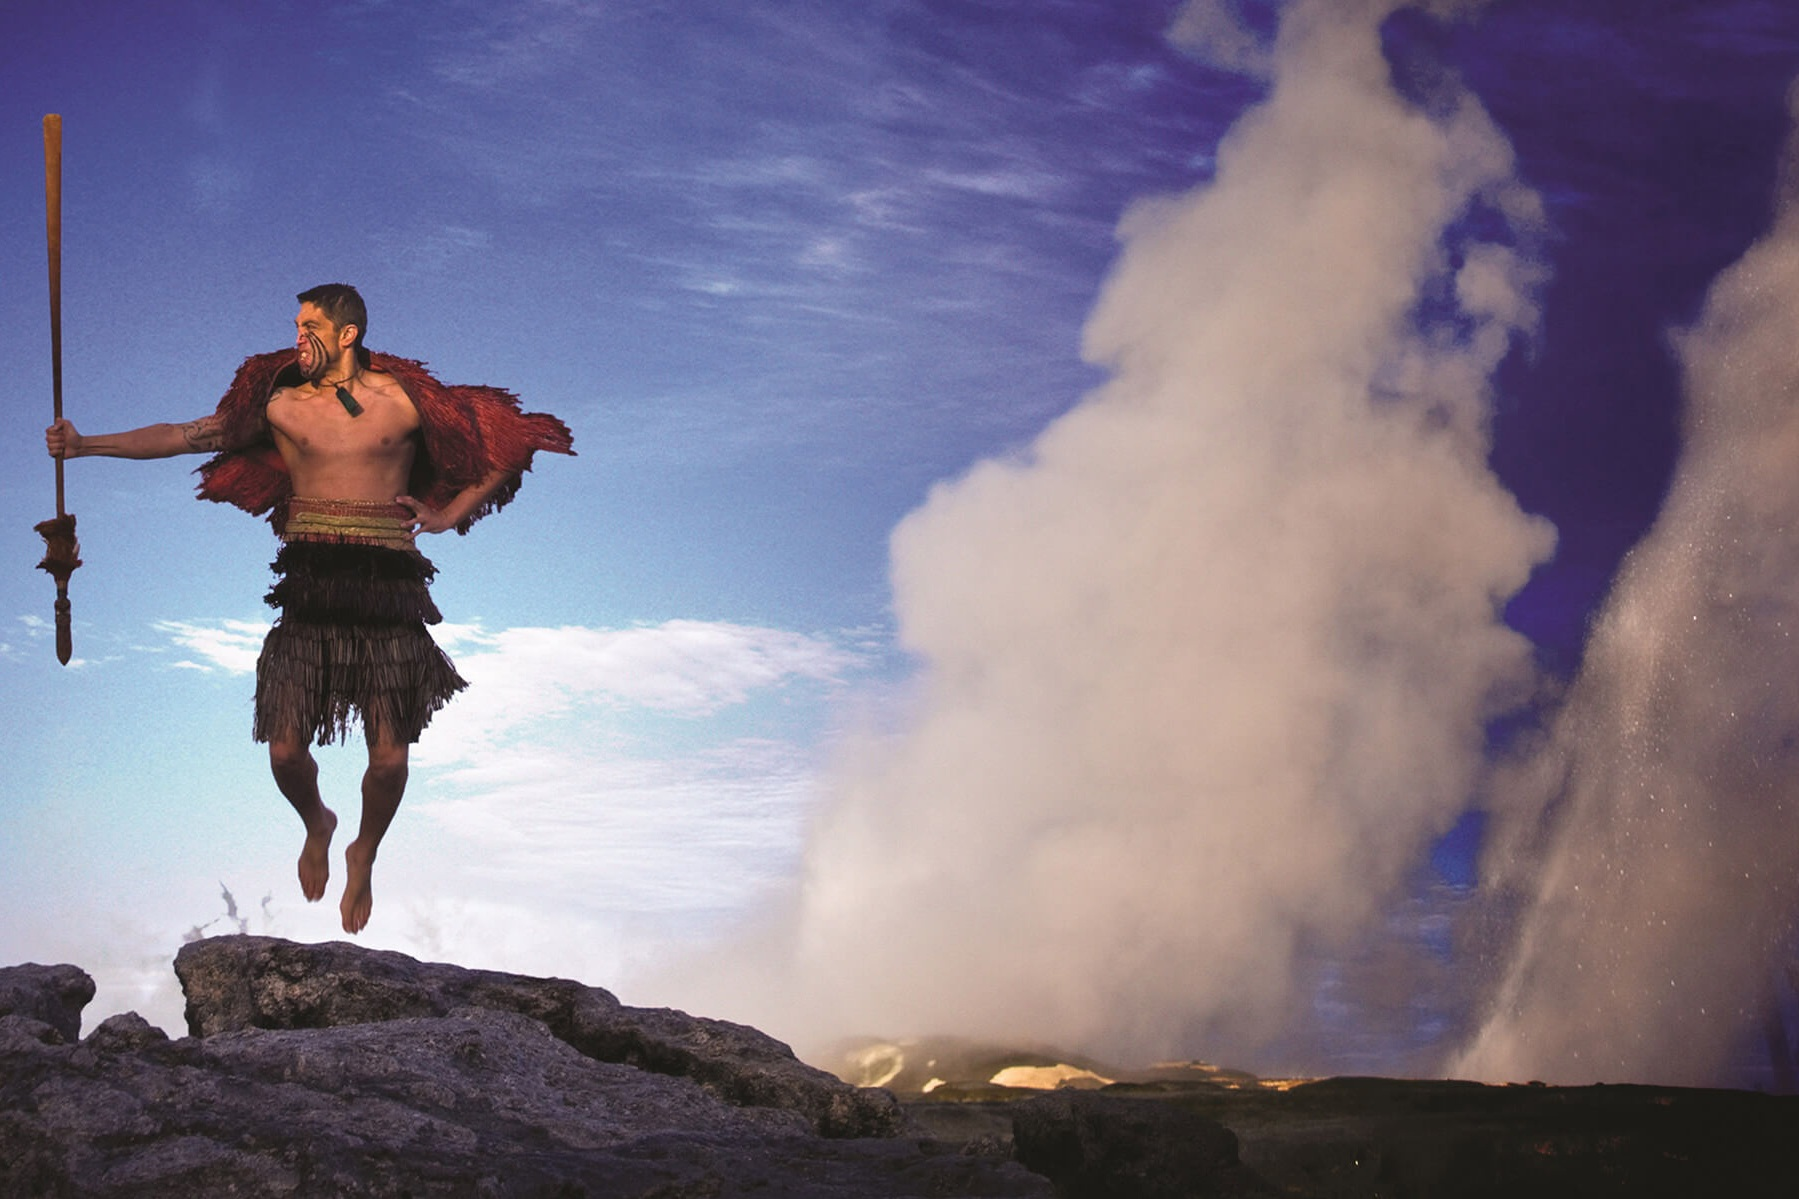 Rotorua Tour (including Te Puia) - From $259 per person